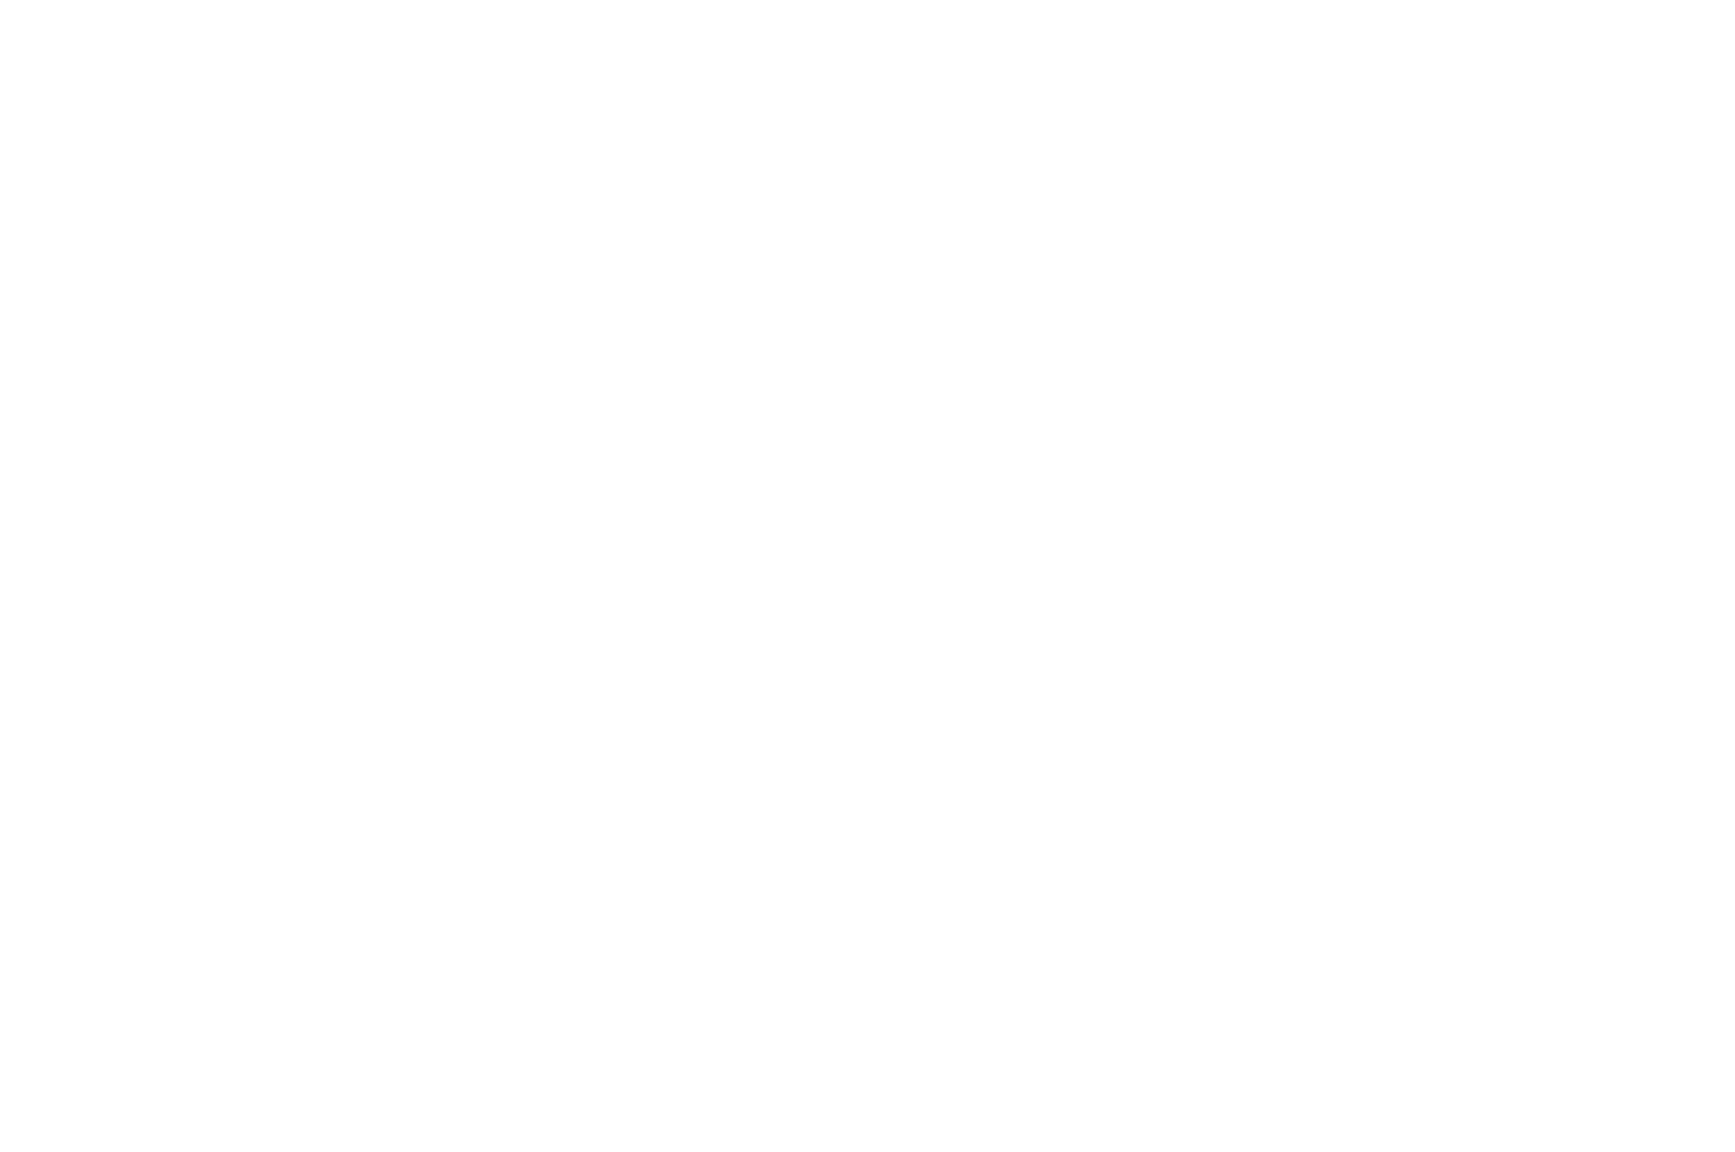 OFFICIAL SELECTION - Hoosierdance Film Festival - 2018.png